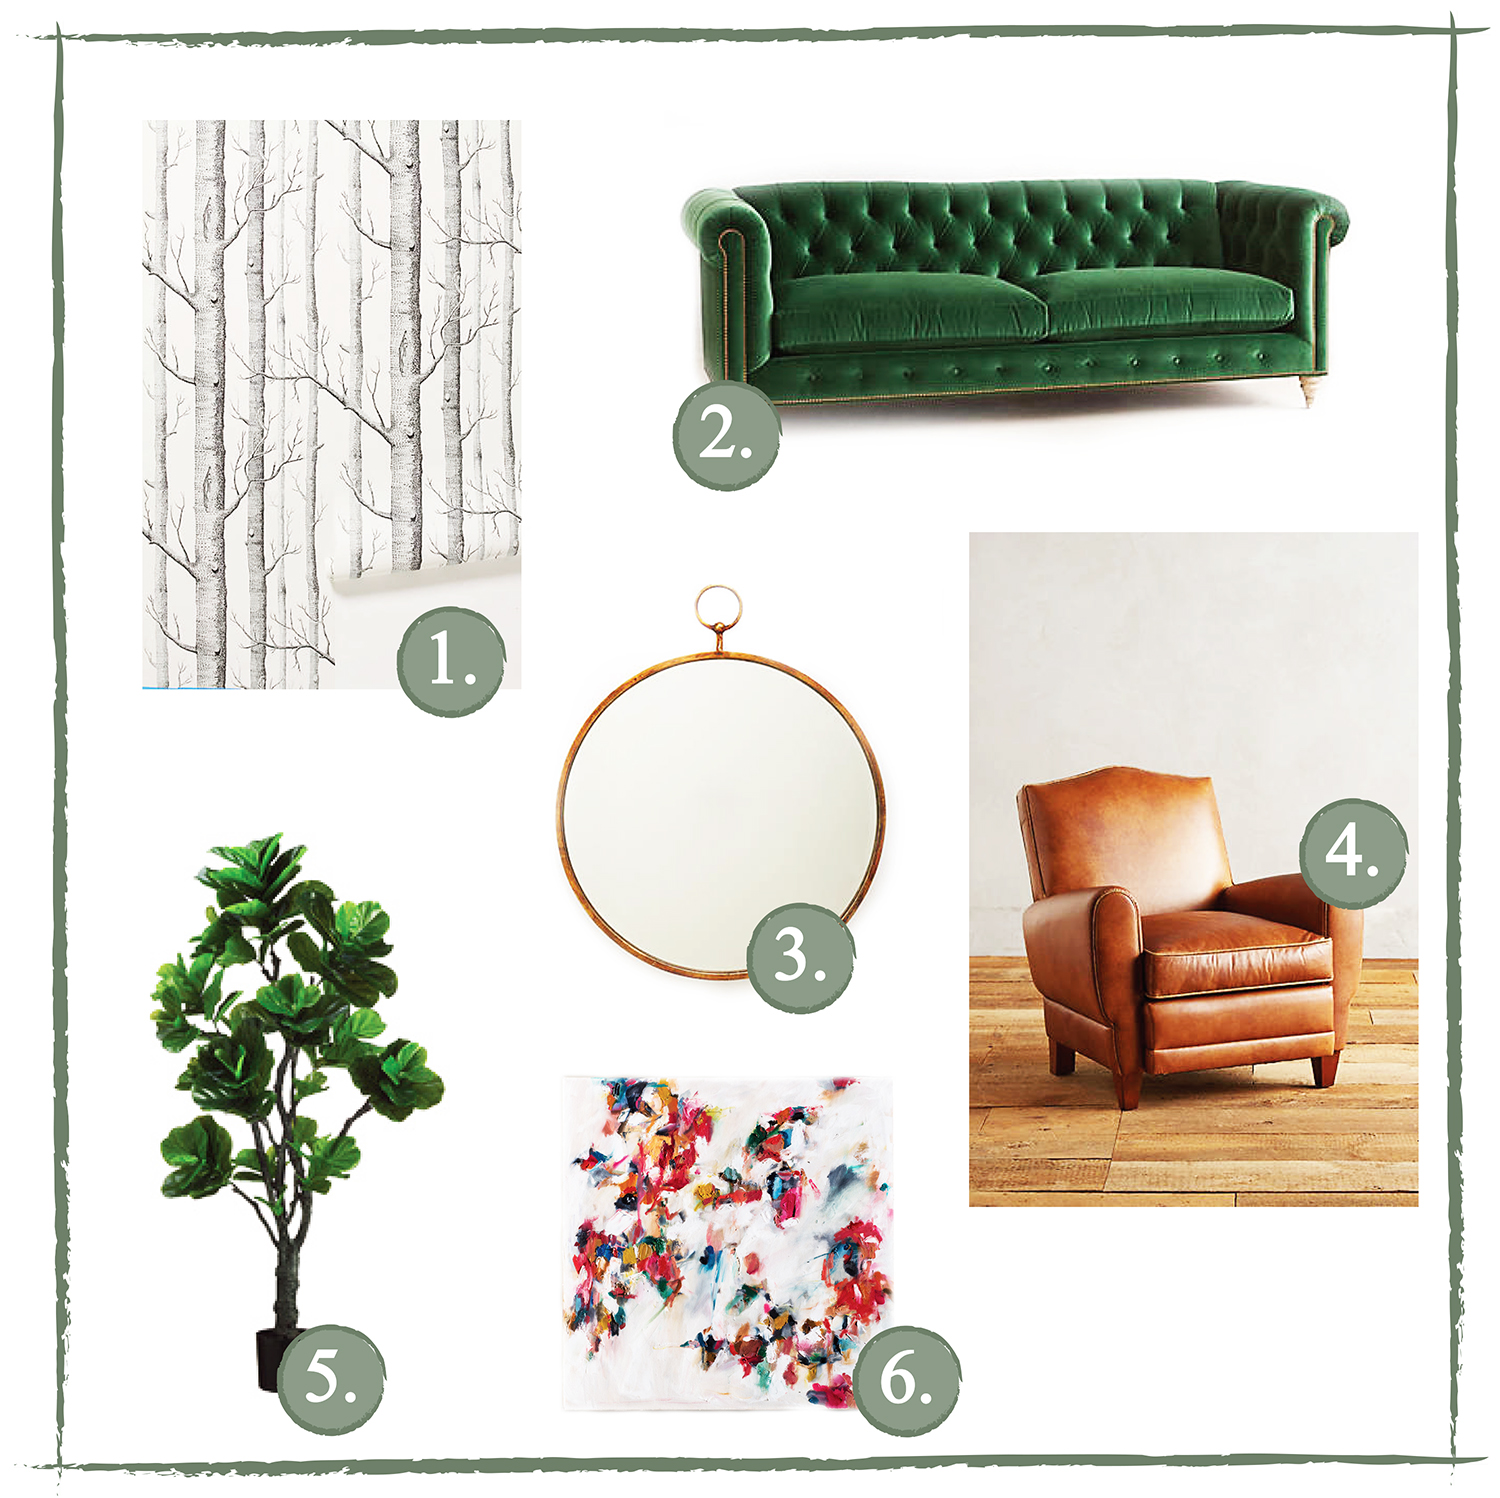 1. Woods Wallpaper - This is on its way to our house! We are going to wallpaper one accent wall, and then surround it with plants.  2. Chesterfield Sofa - Saving up for this one. I've been admiring this couch for *years*. It is perfect.  3. Hoop Mirror - I'd like to add a couple of large mirrors to help brighten and enlarge our living room and dining rooms.  4. Chair - A couple of our living room chairs are in need of replacement. They were both less than $50 and purchased in college, so...time for an upgrade.  5. Fiddle Leaf Fig Tree - I love these plants. Bought one this summer and neglected it so...back to Bachman's.  6. Torey Erin painting - Forage Modern Workshop carries original artwork from local artists, and this past year I visited their shop a few times to admire Torey Erin's paintings. I love the abstract mess of this and the flurry of bright colors would add the perfect pop to anyone's wall.  (Here is a throwback to  a post I did on my old blog back in 2011 - glad to know my style preferences are consistent :)I would still go for that pink tree wallpaper, but, we painted a whole wall that color already ).